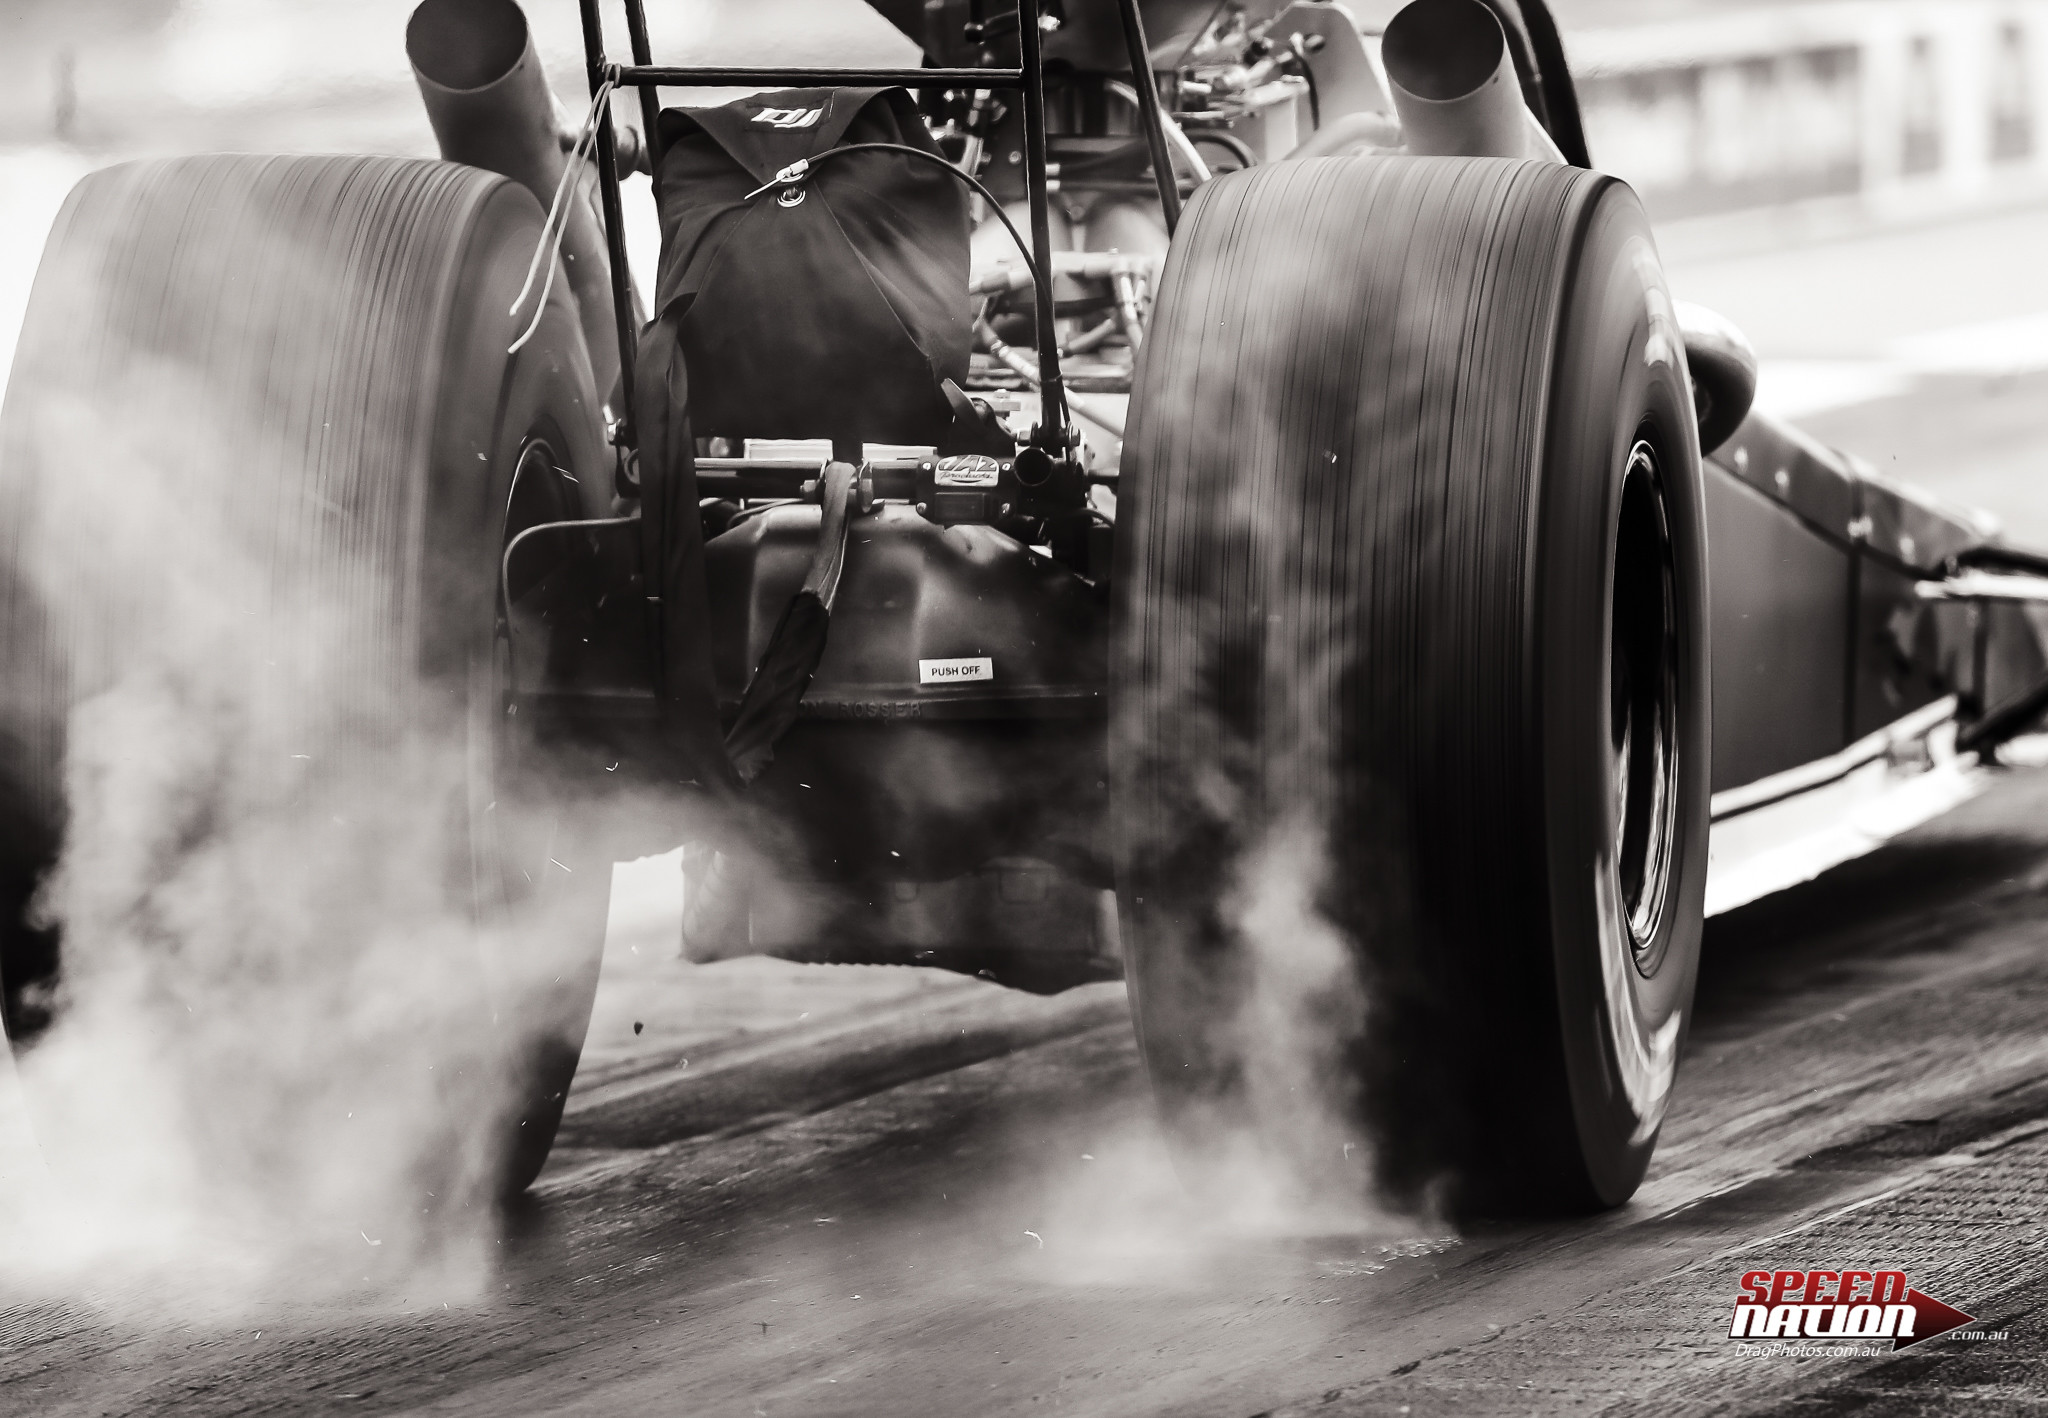 Res: 2048x1418, Wallpaper Wednesday – {Drag Racing Edition}